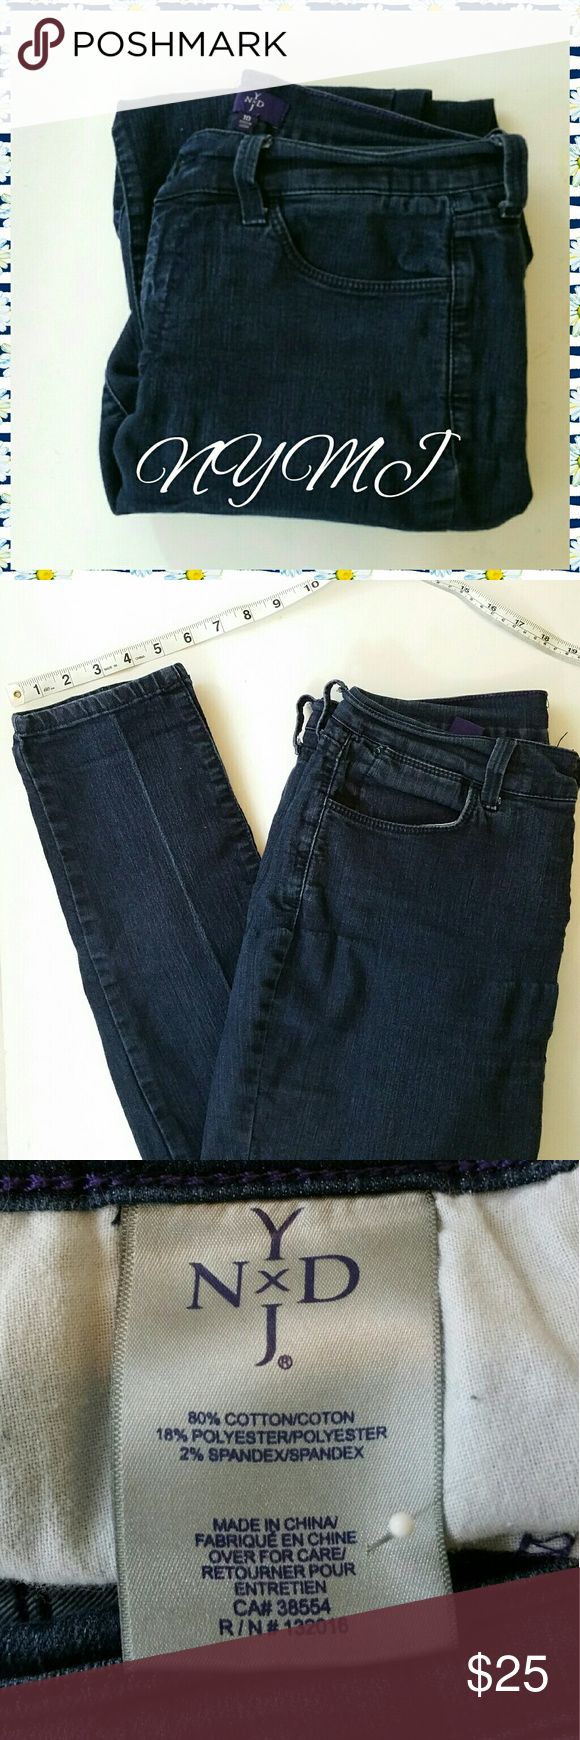 NOT YOU MOTHER'S JEANS (NYMJ), SIZE 10 ●NOT YOUR MOTHER'S JEANS (NYMJ) ●SIZE 10 ●80% cotton 16% polyester 2% spandex ●Machine wash cold inside out, line dry ●Rise measures 10 inches ●Waistband measures approximately 15.5 inches ●Inseam measures approximately 30 inches ●No flaws, tears or stains ●Non smoking home Not Your Mother's Jeans Jeans Skinny